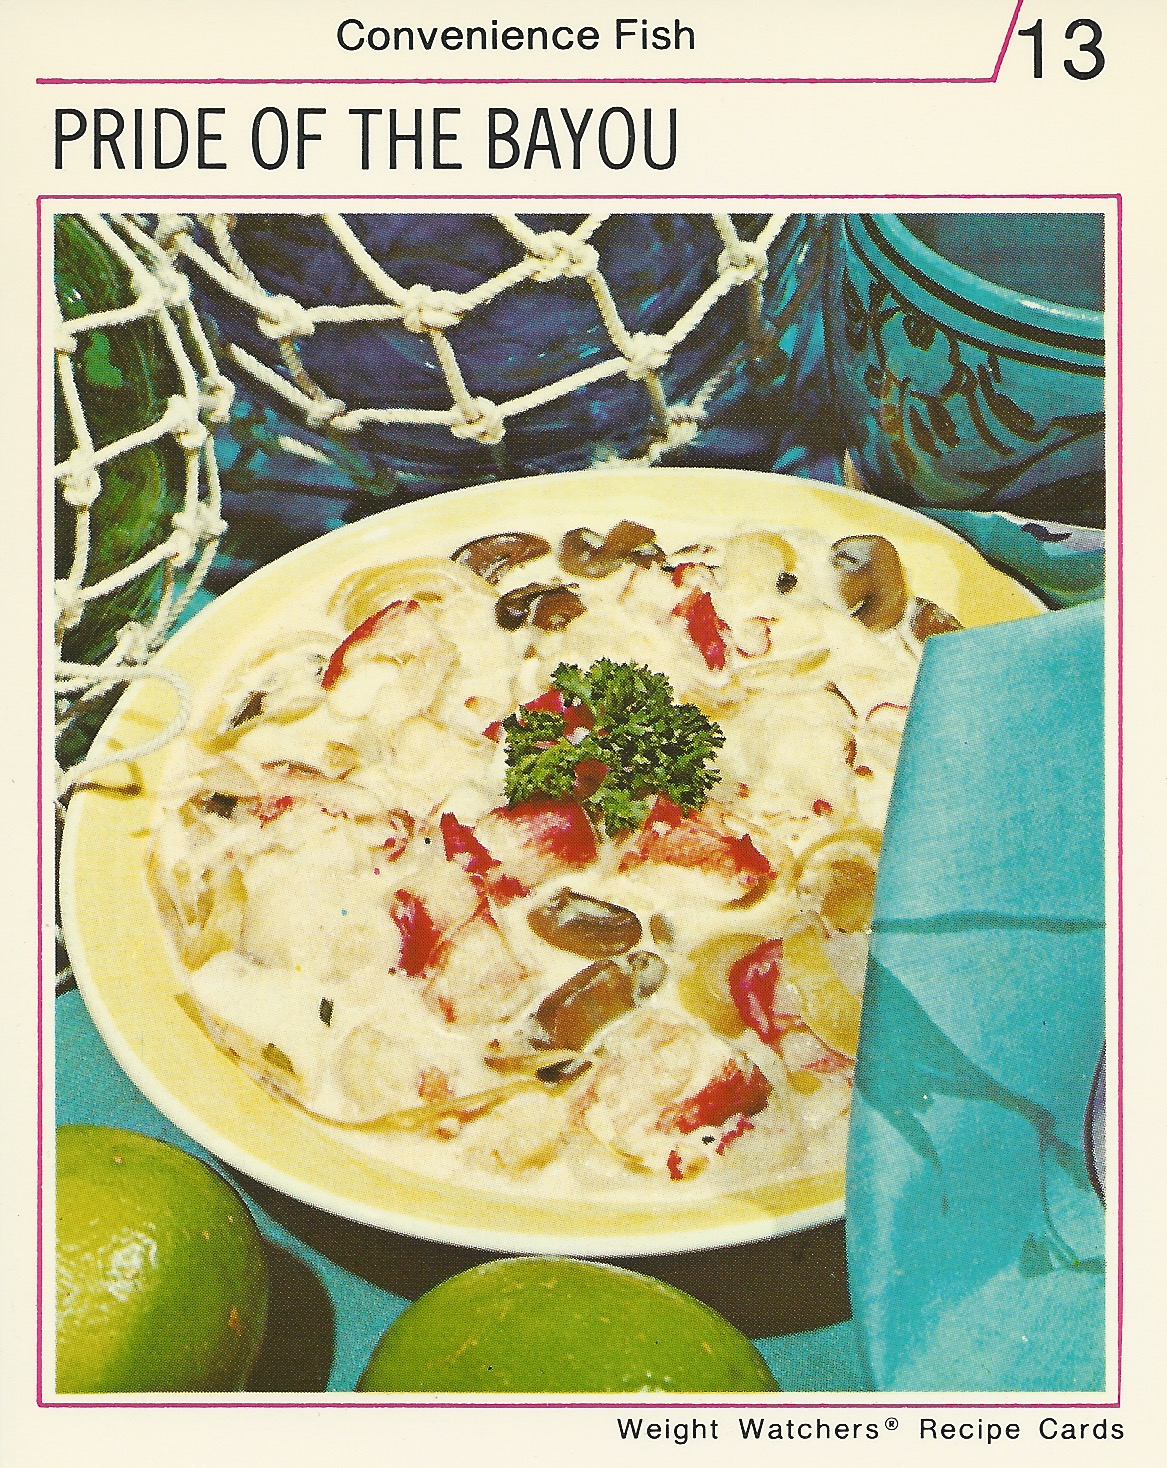 Pride of the bayou vintage recipe cards vintage recipe cards weight watchers international recipe cards prideofbayou forumfinder Gallery